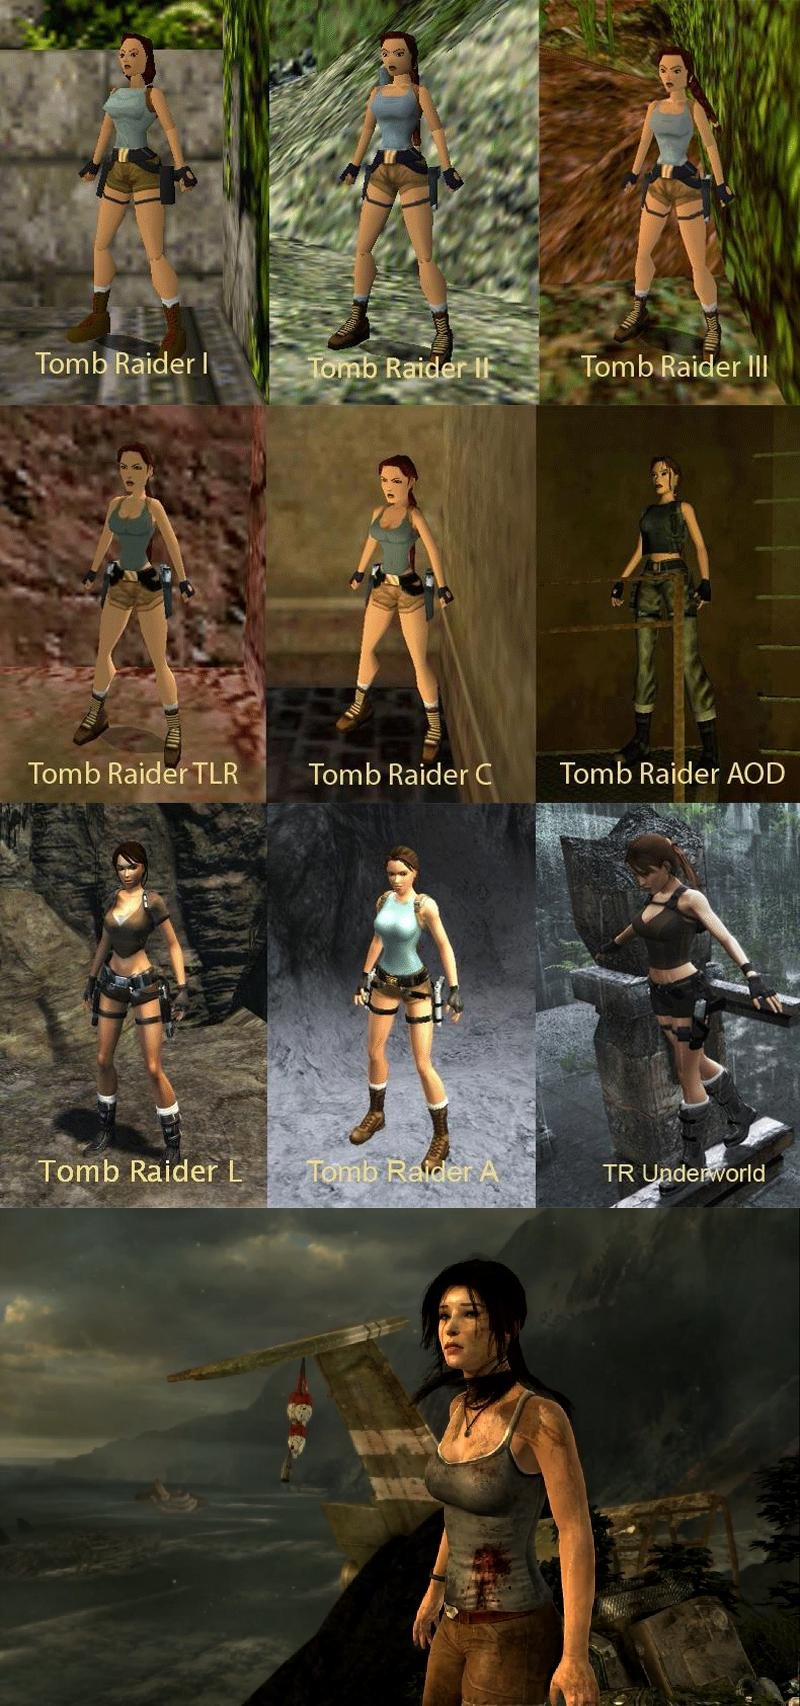 Tomb raider underworld boobs cartoon animation sister